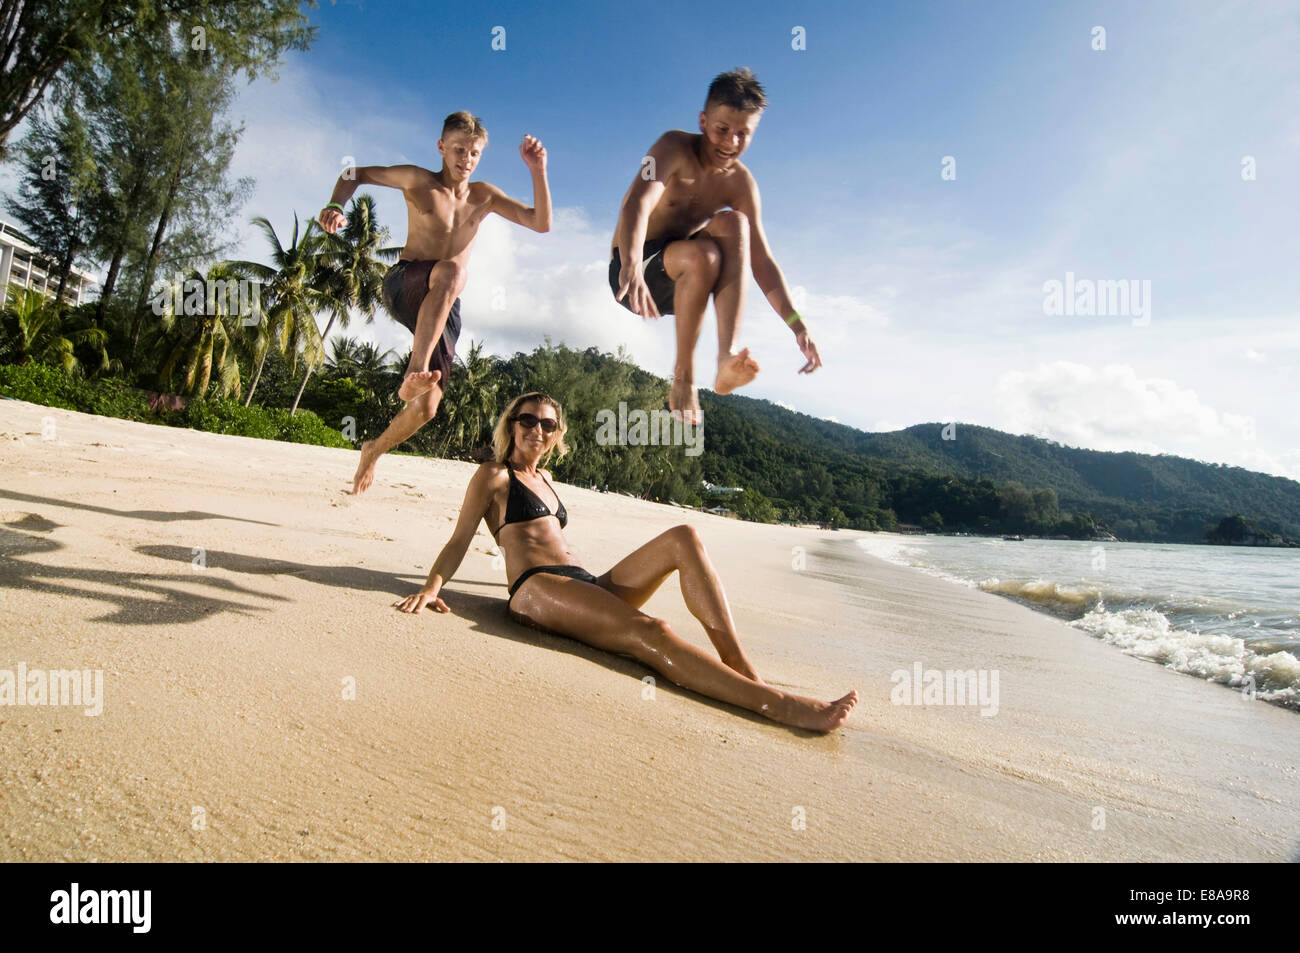 Mère de deux fils adolescents at beach, Penang, Malaisie Photo Stock